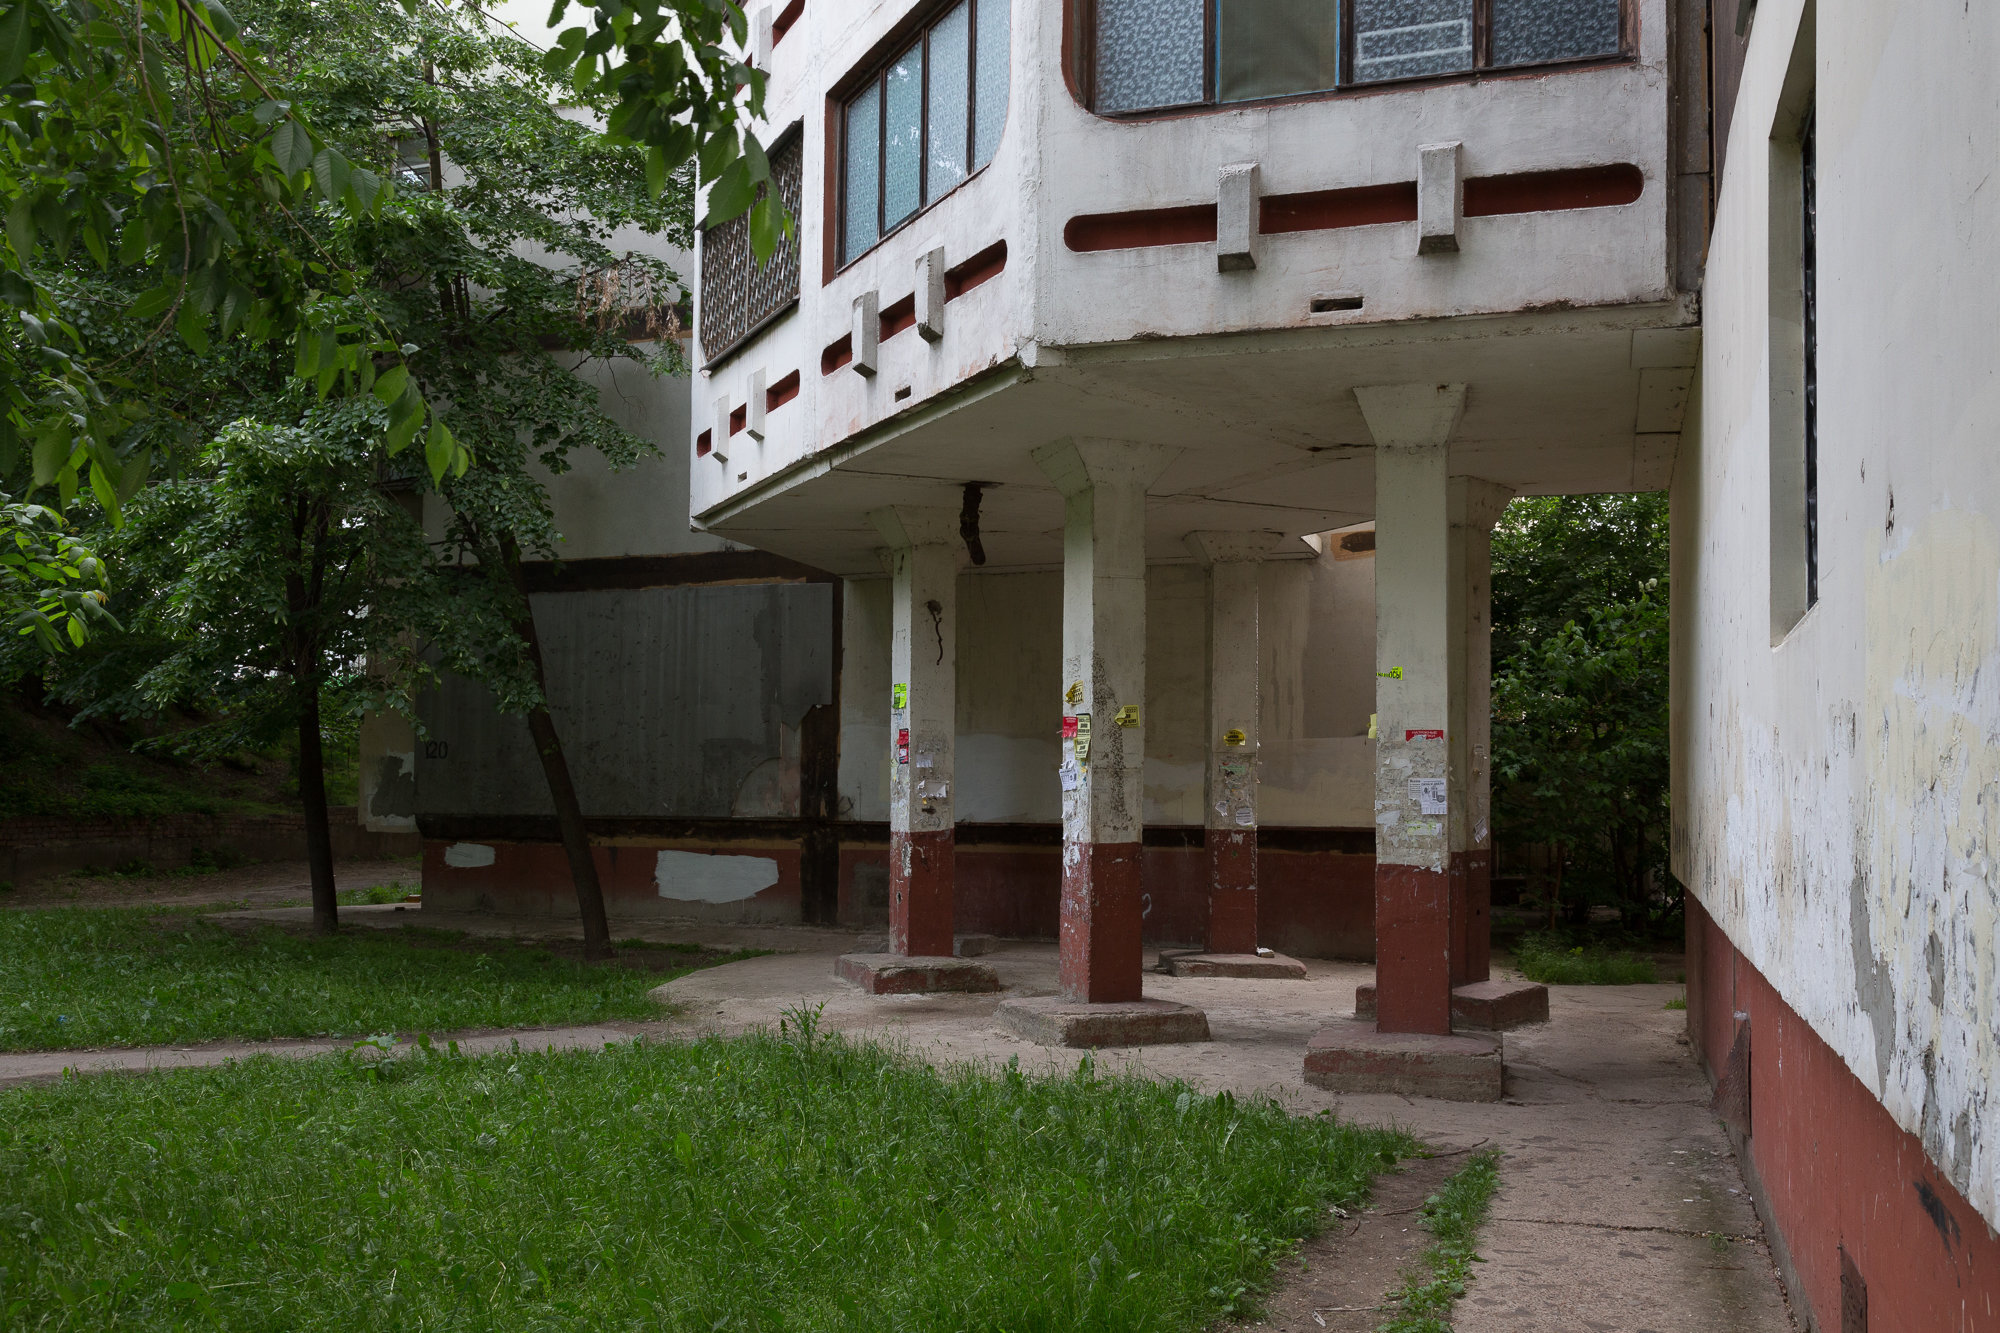 Residential building in Tiraspol